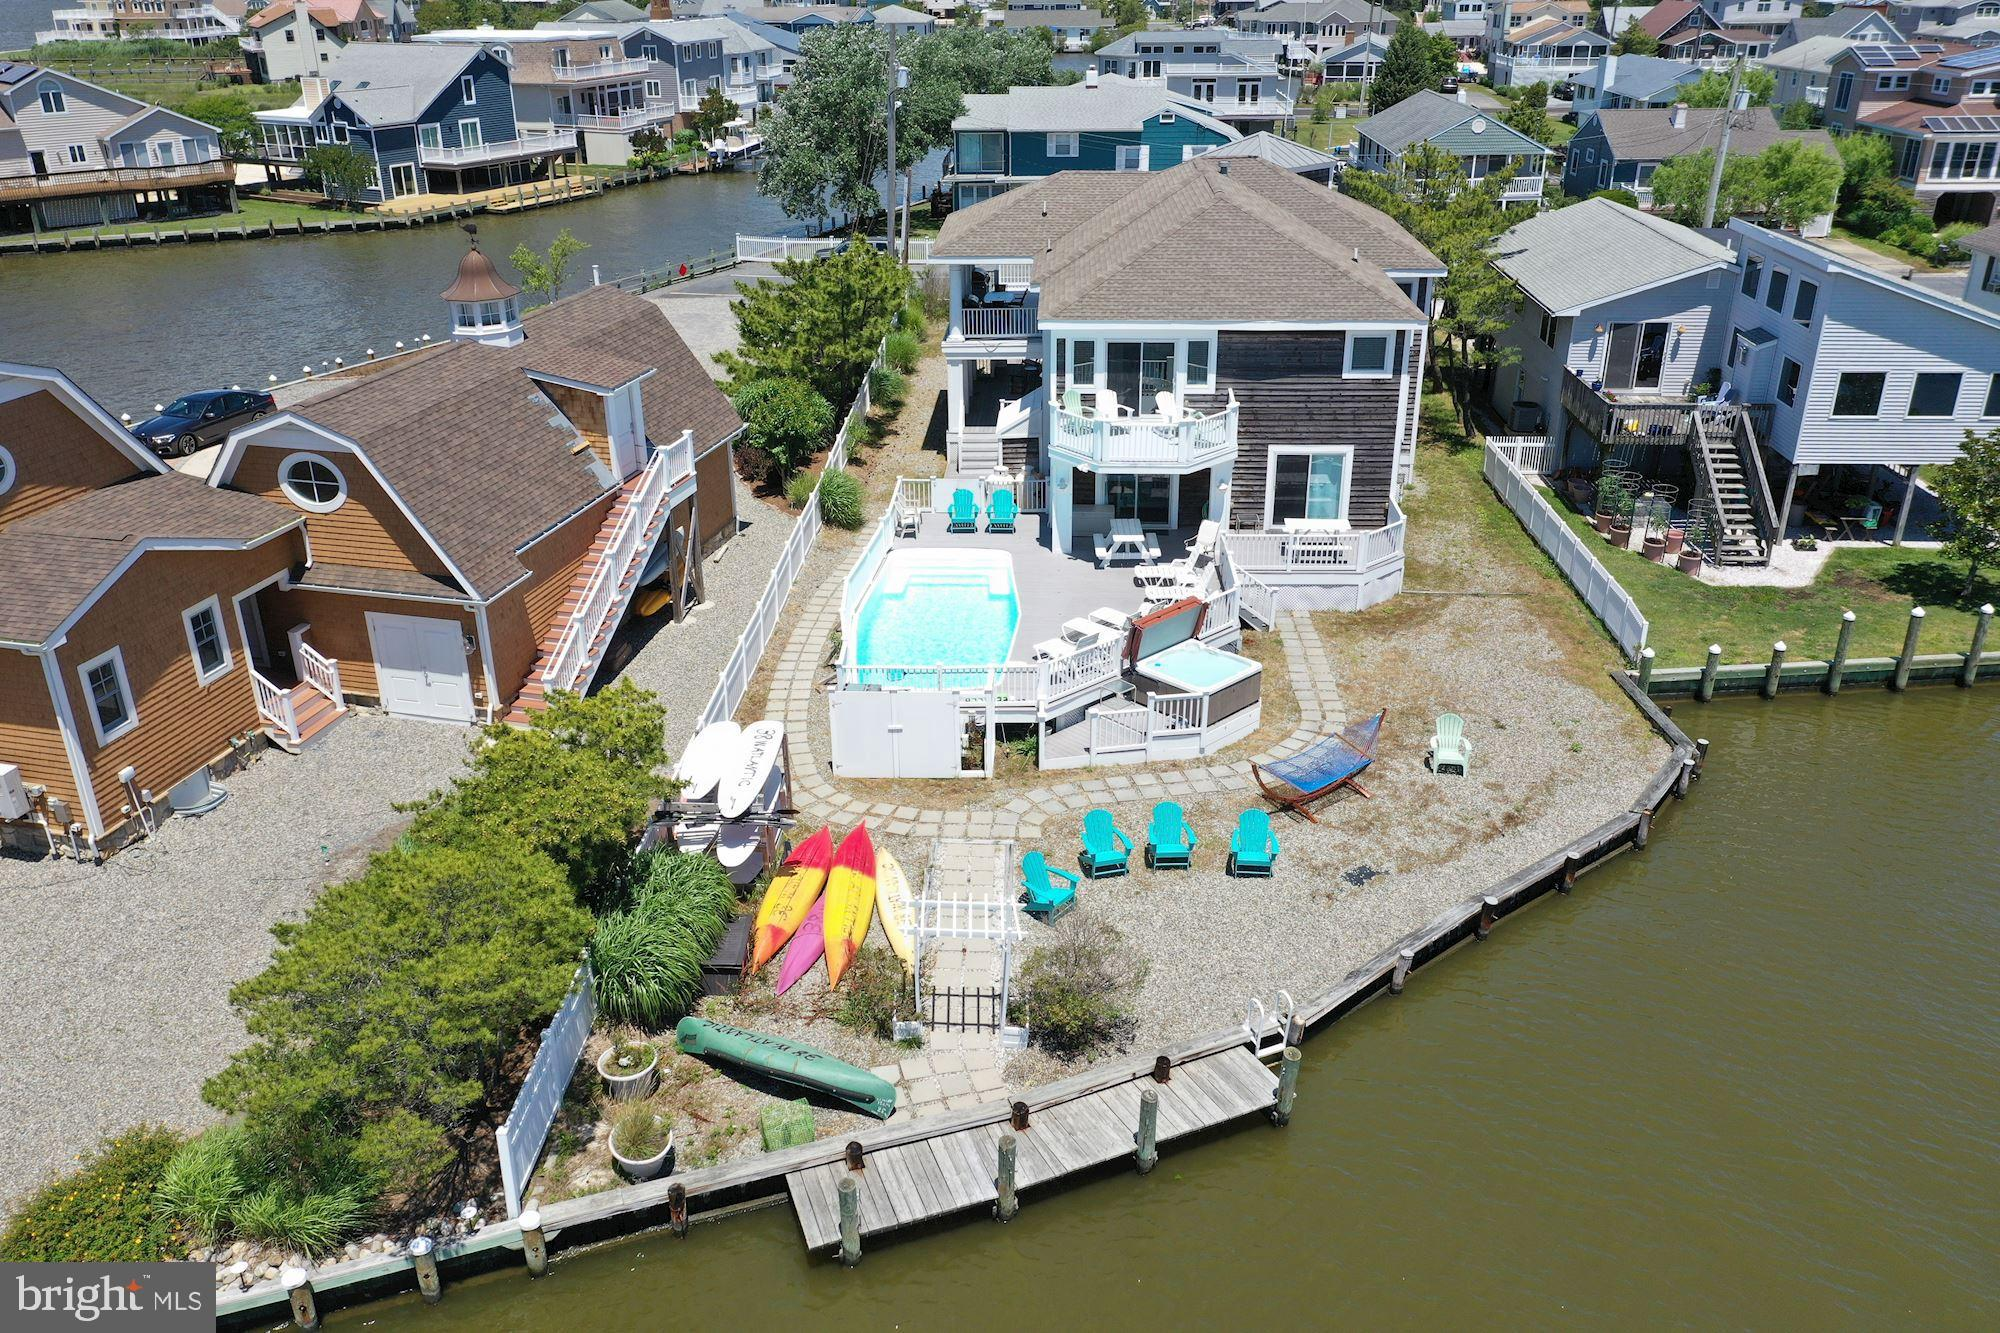 Great investment opportunity to own a direct waterfront home in the heart of Fenwick Island!  Guests enjoy stunning bay views from almost every room in the home, a private boat dock to accommodate multiple watercraft, kayak storage, an outdoor shower, a hot tub and a personal swimming pool with an expansive Trex deck providing a perfect place to sunbathe, entertain and take in gorgeous sunsets everyday.  The main level of this coastal gem features warm hardwood floors, vaulted beamed ceilings, a spacious gourmet kitchen with granite countertops, stainless steel appliances and an expansive center island.  An open floor plan encompasses a family and dining room with double-sided gas fireplace.  Sitting area adorned by sun-filled windows and sliding doors leading to a generously sized wrap around balcony partially covered for extended dining options.   A balcony off the primary bedroom suite allows you to take in all the property has to offer and is complete with an oversized tiled shower stall with glass doors, dual vanity and clawfoot tub.  Lower level offers a laundry area, four bedrooms, three en-suite, and a bonus room that can be used as a sixth bedroom with a wet bar and sliding door access to the pool.  Located at the end of a quiet street it is an easy walk to restaurants, boutique shopping, mini-golf and many other Fenwick fun spots.  House is being sold completely furnished.  Current rental bookings total more than $200,000 in revenue!